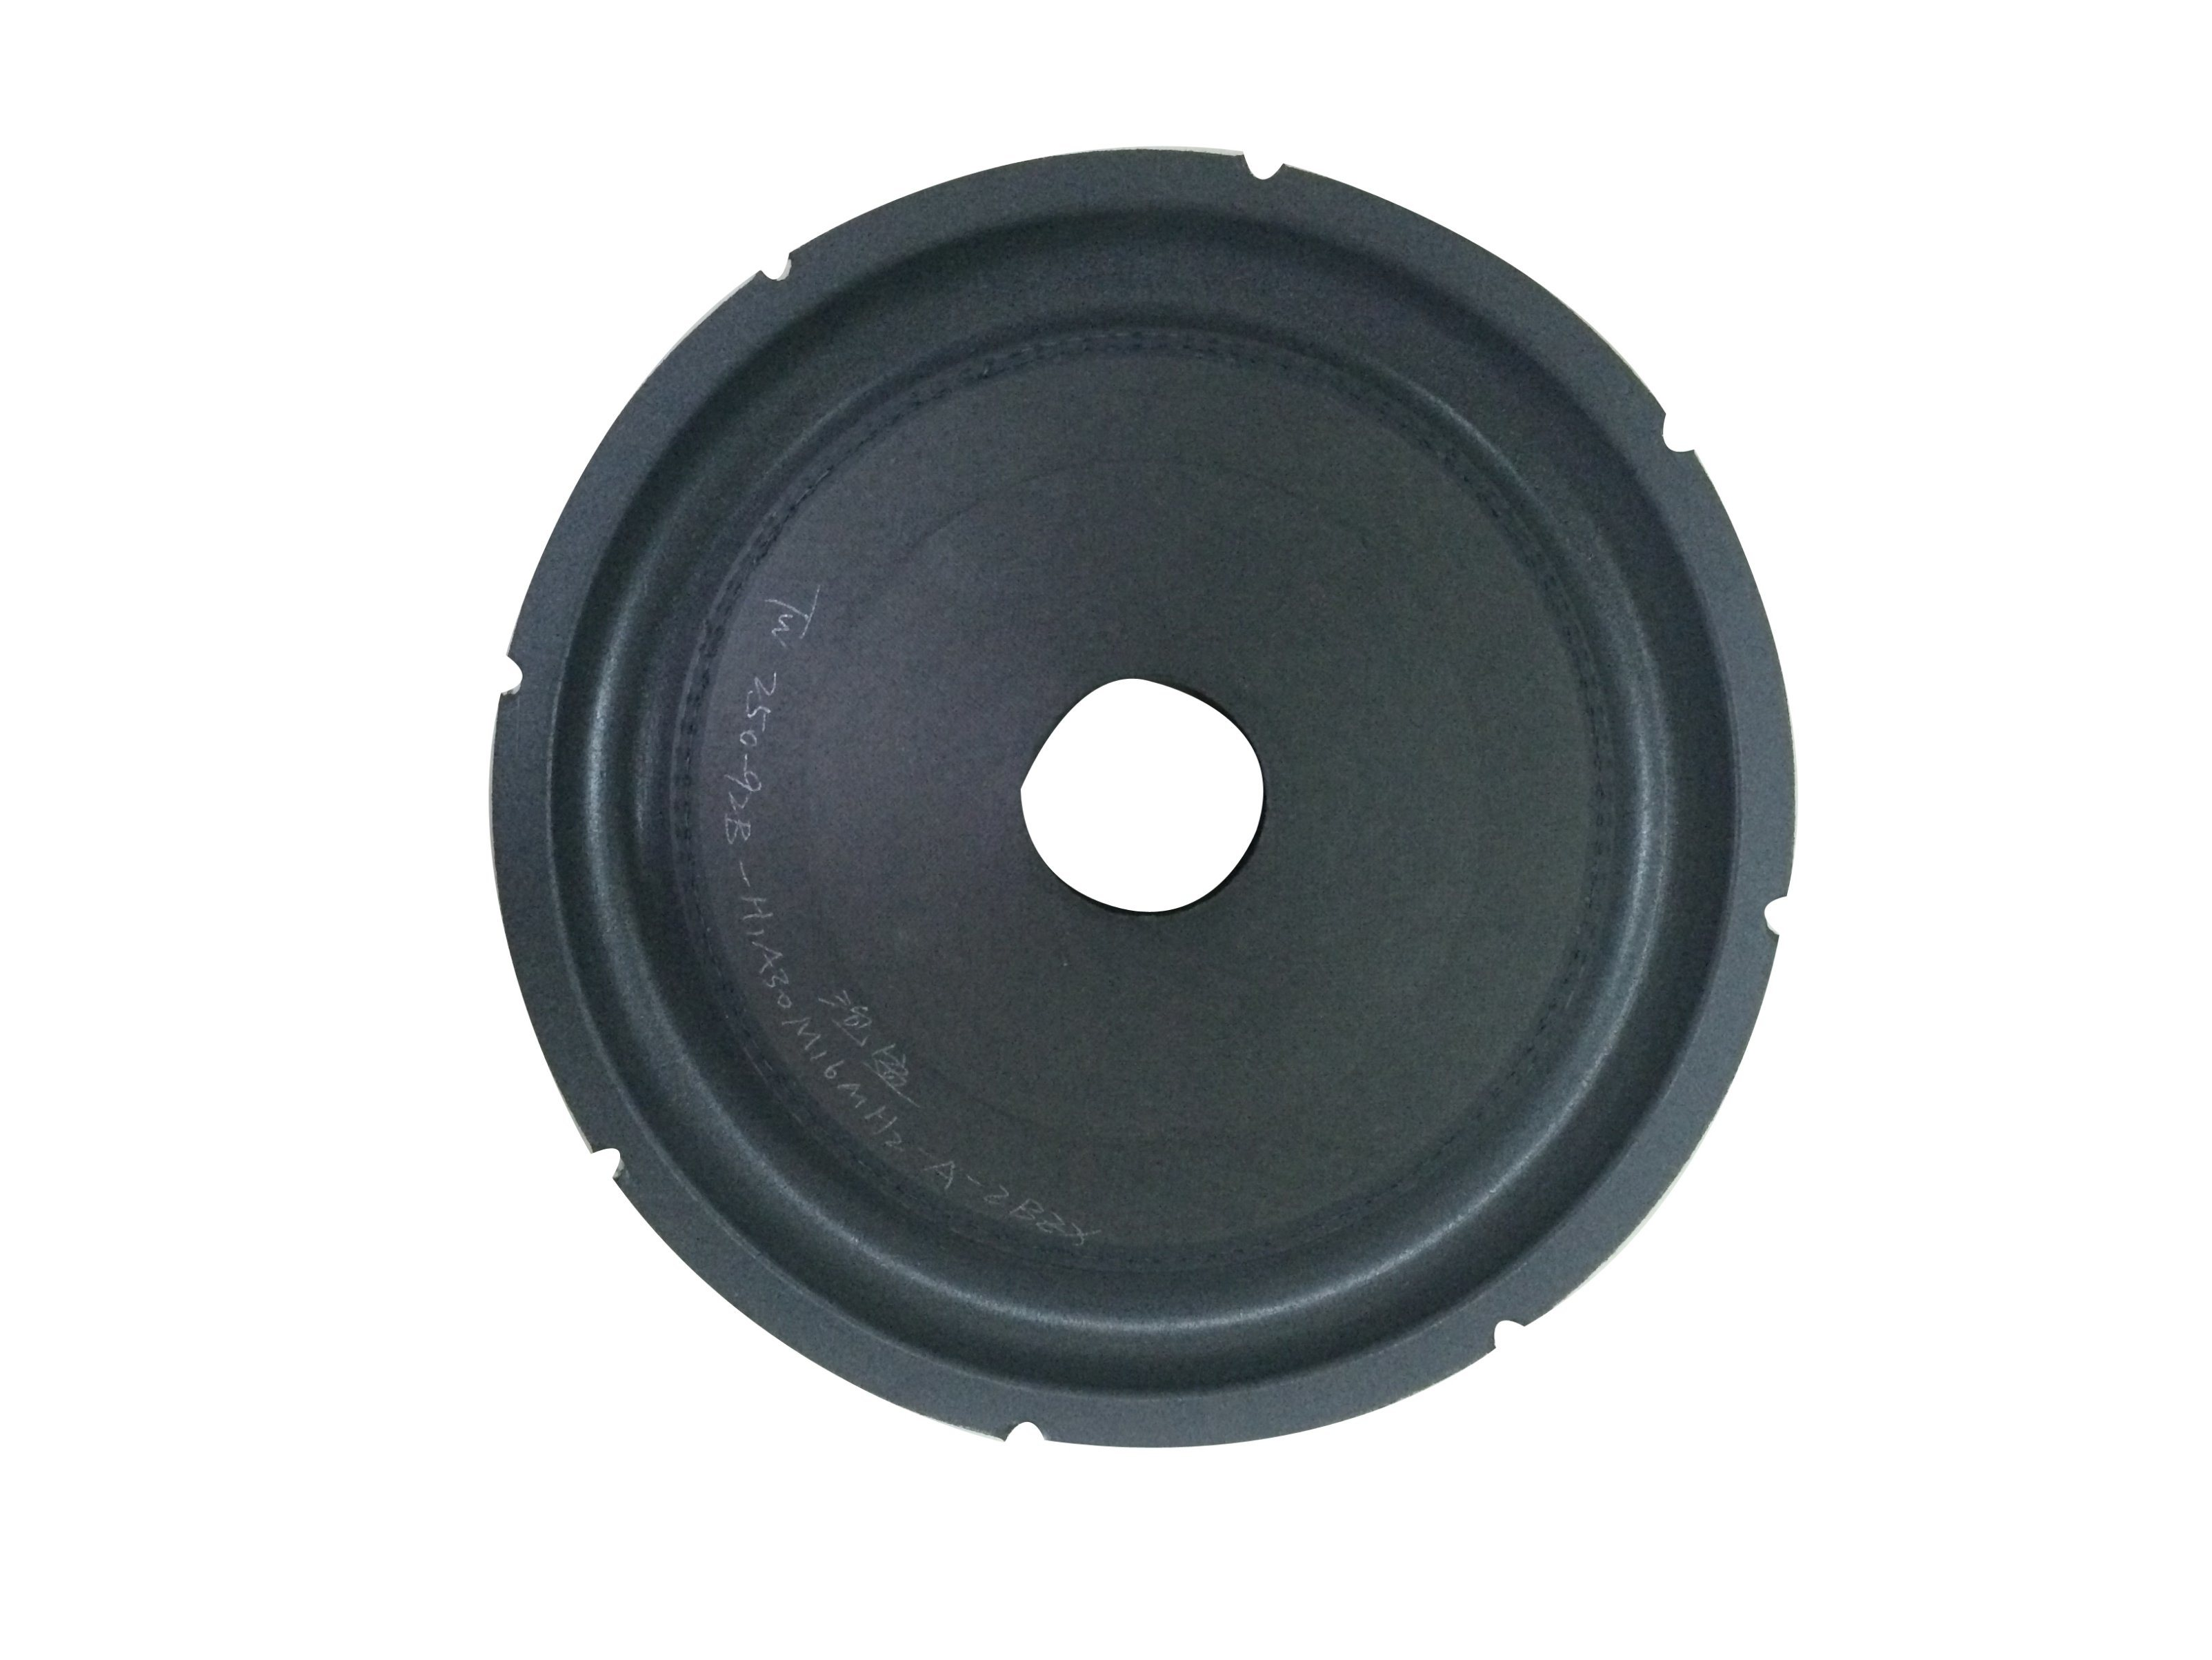 Subwoofer Speaker Parts Cone for Car Speaker System-10inch Foam Edge Cone